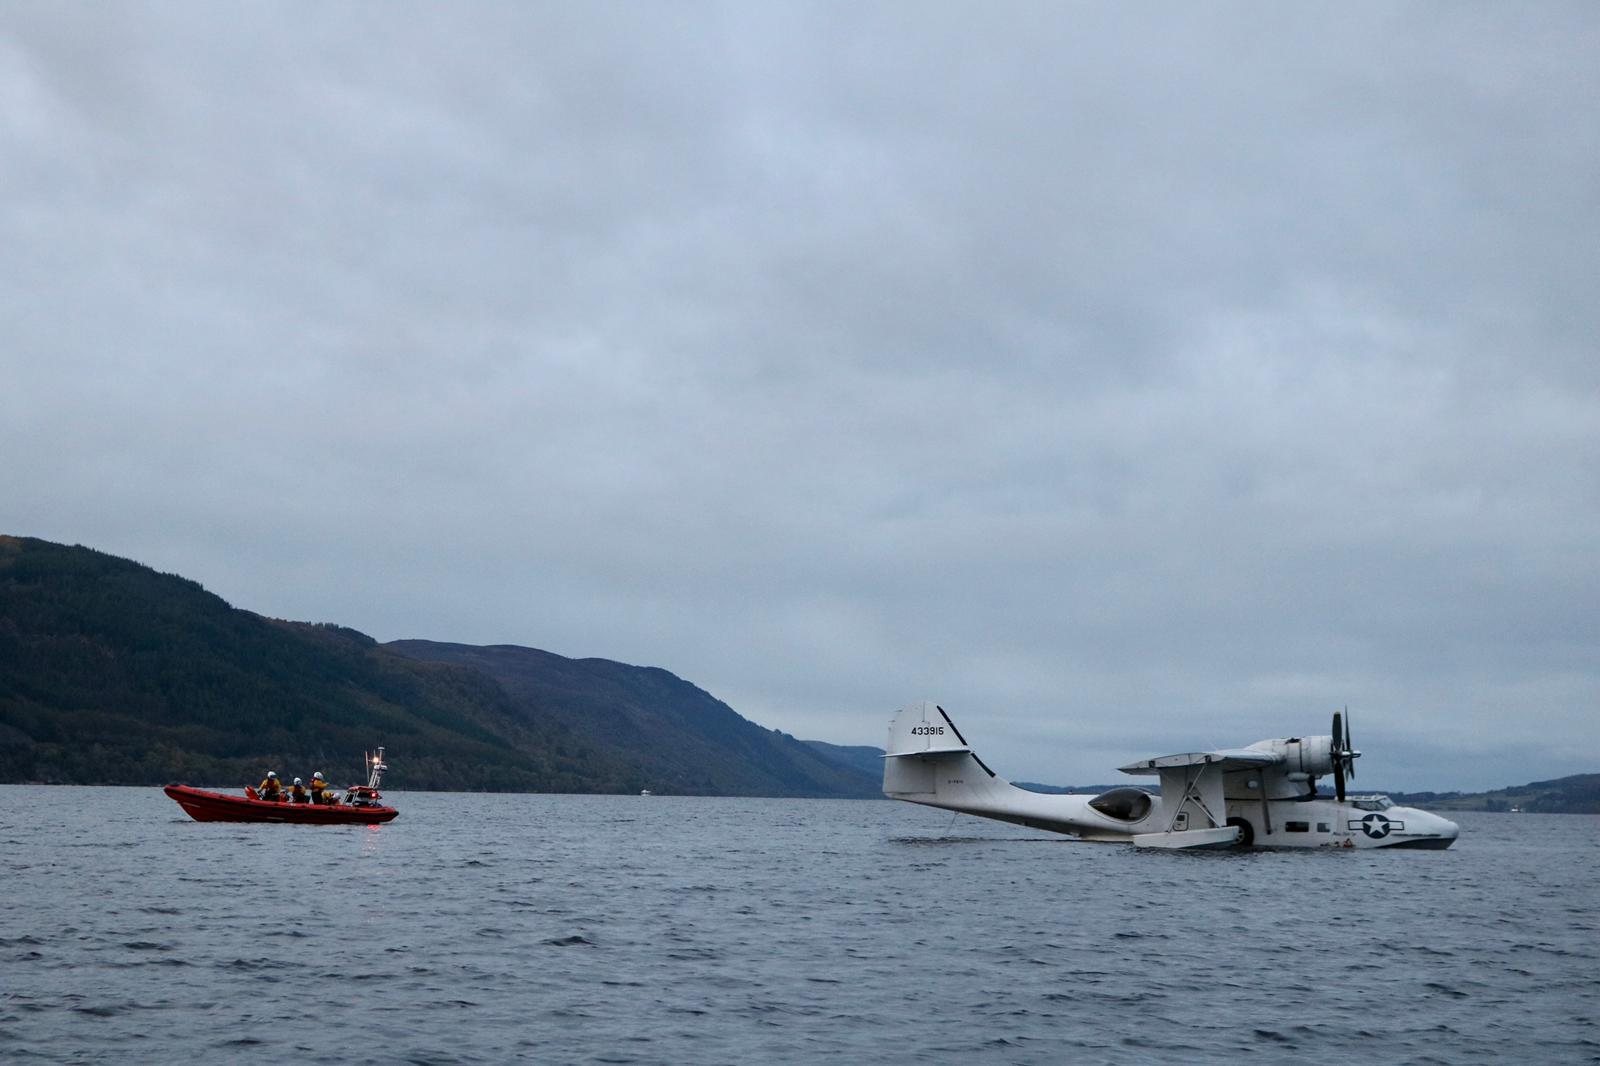 Second World War flying boat with engine failure sparks rescue on Loch Ness